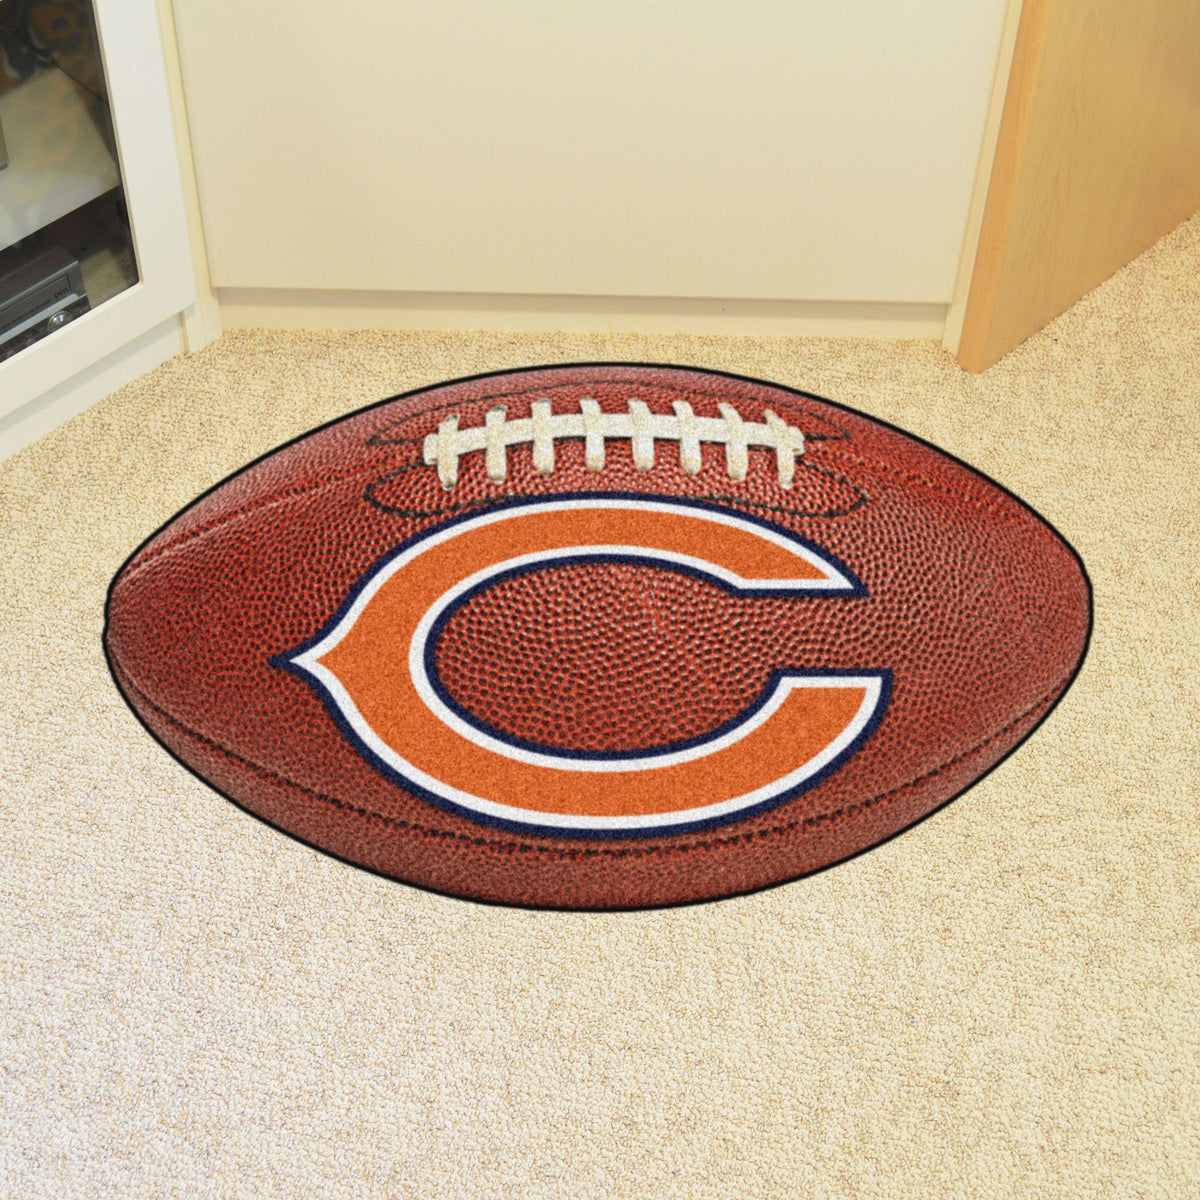 NFL - Football Mat NFL Mats, Custom Shape Rugs, Football Mat, NFL, Home Fan Mats Chicago Bears